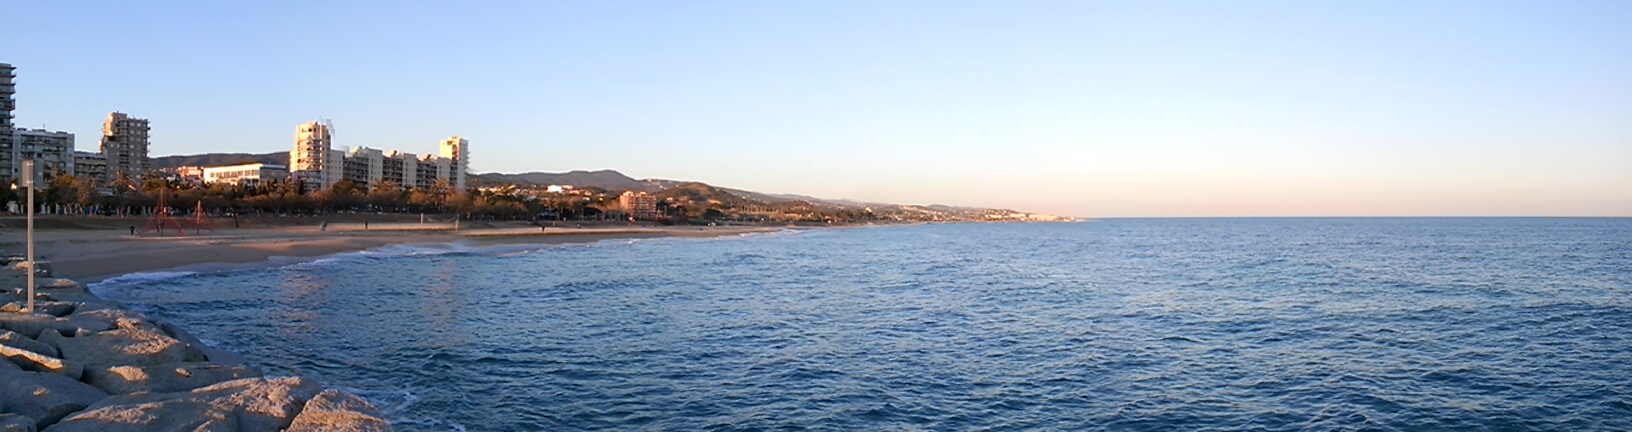 Mataró, sea and coast